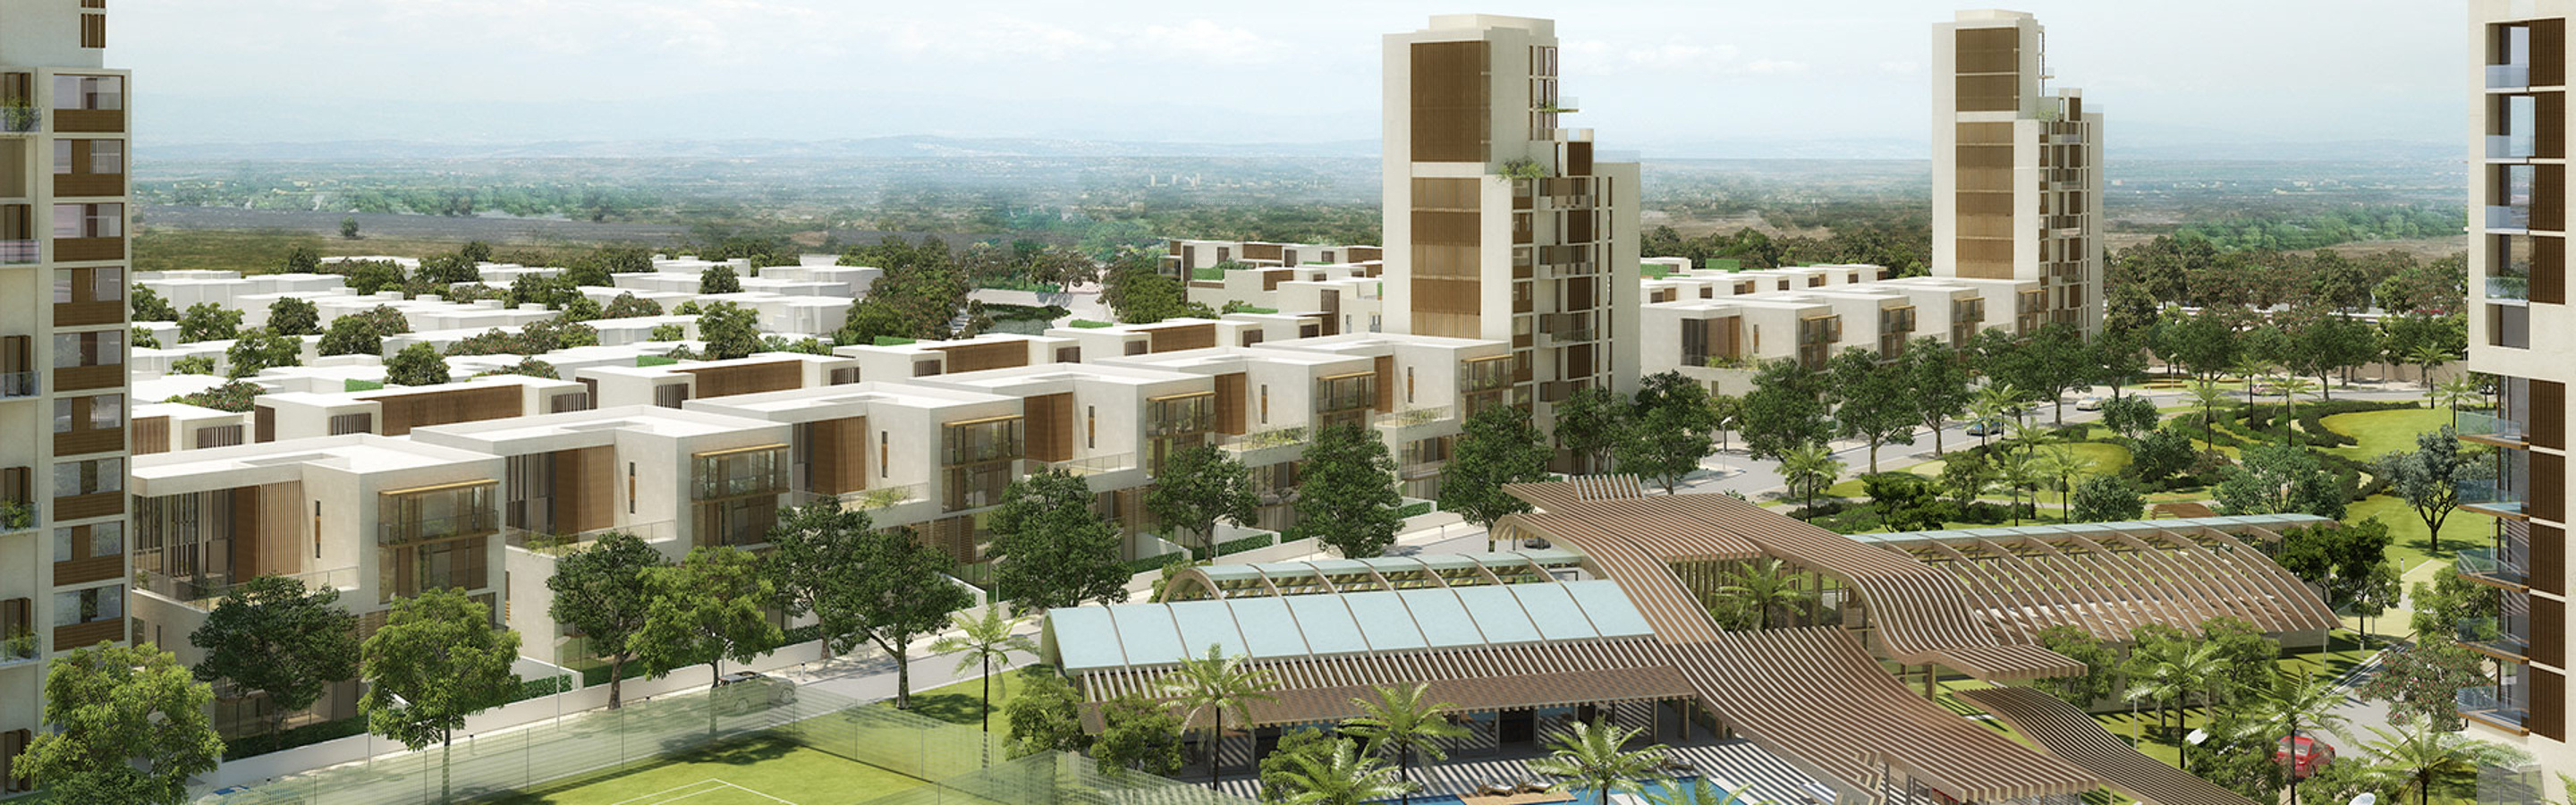 2550 sq ft 3 BHK 3T Apartment for Sale in TATA Housing Development